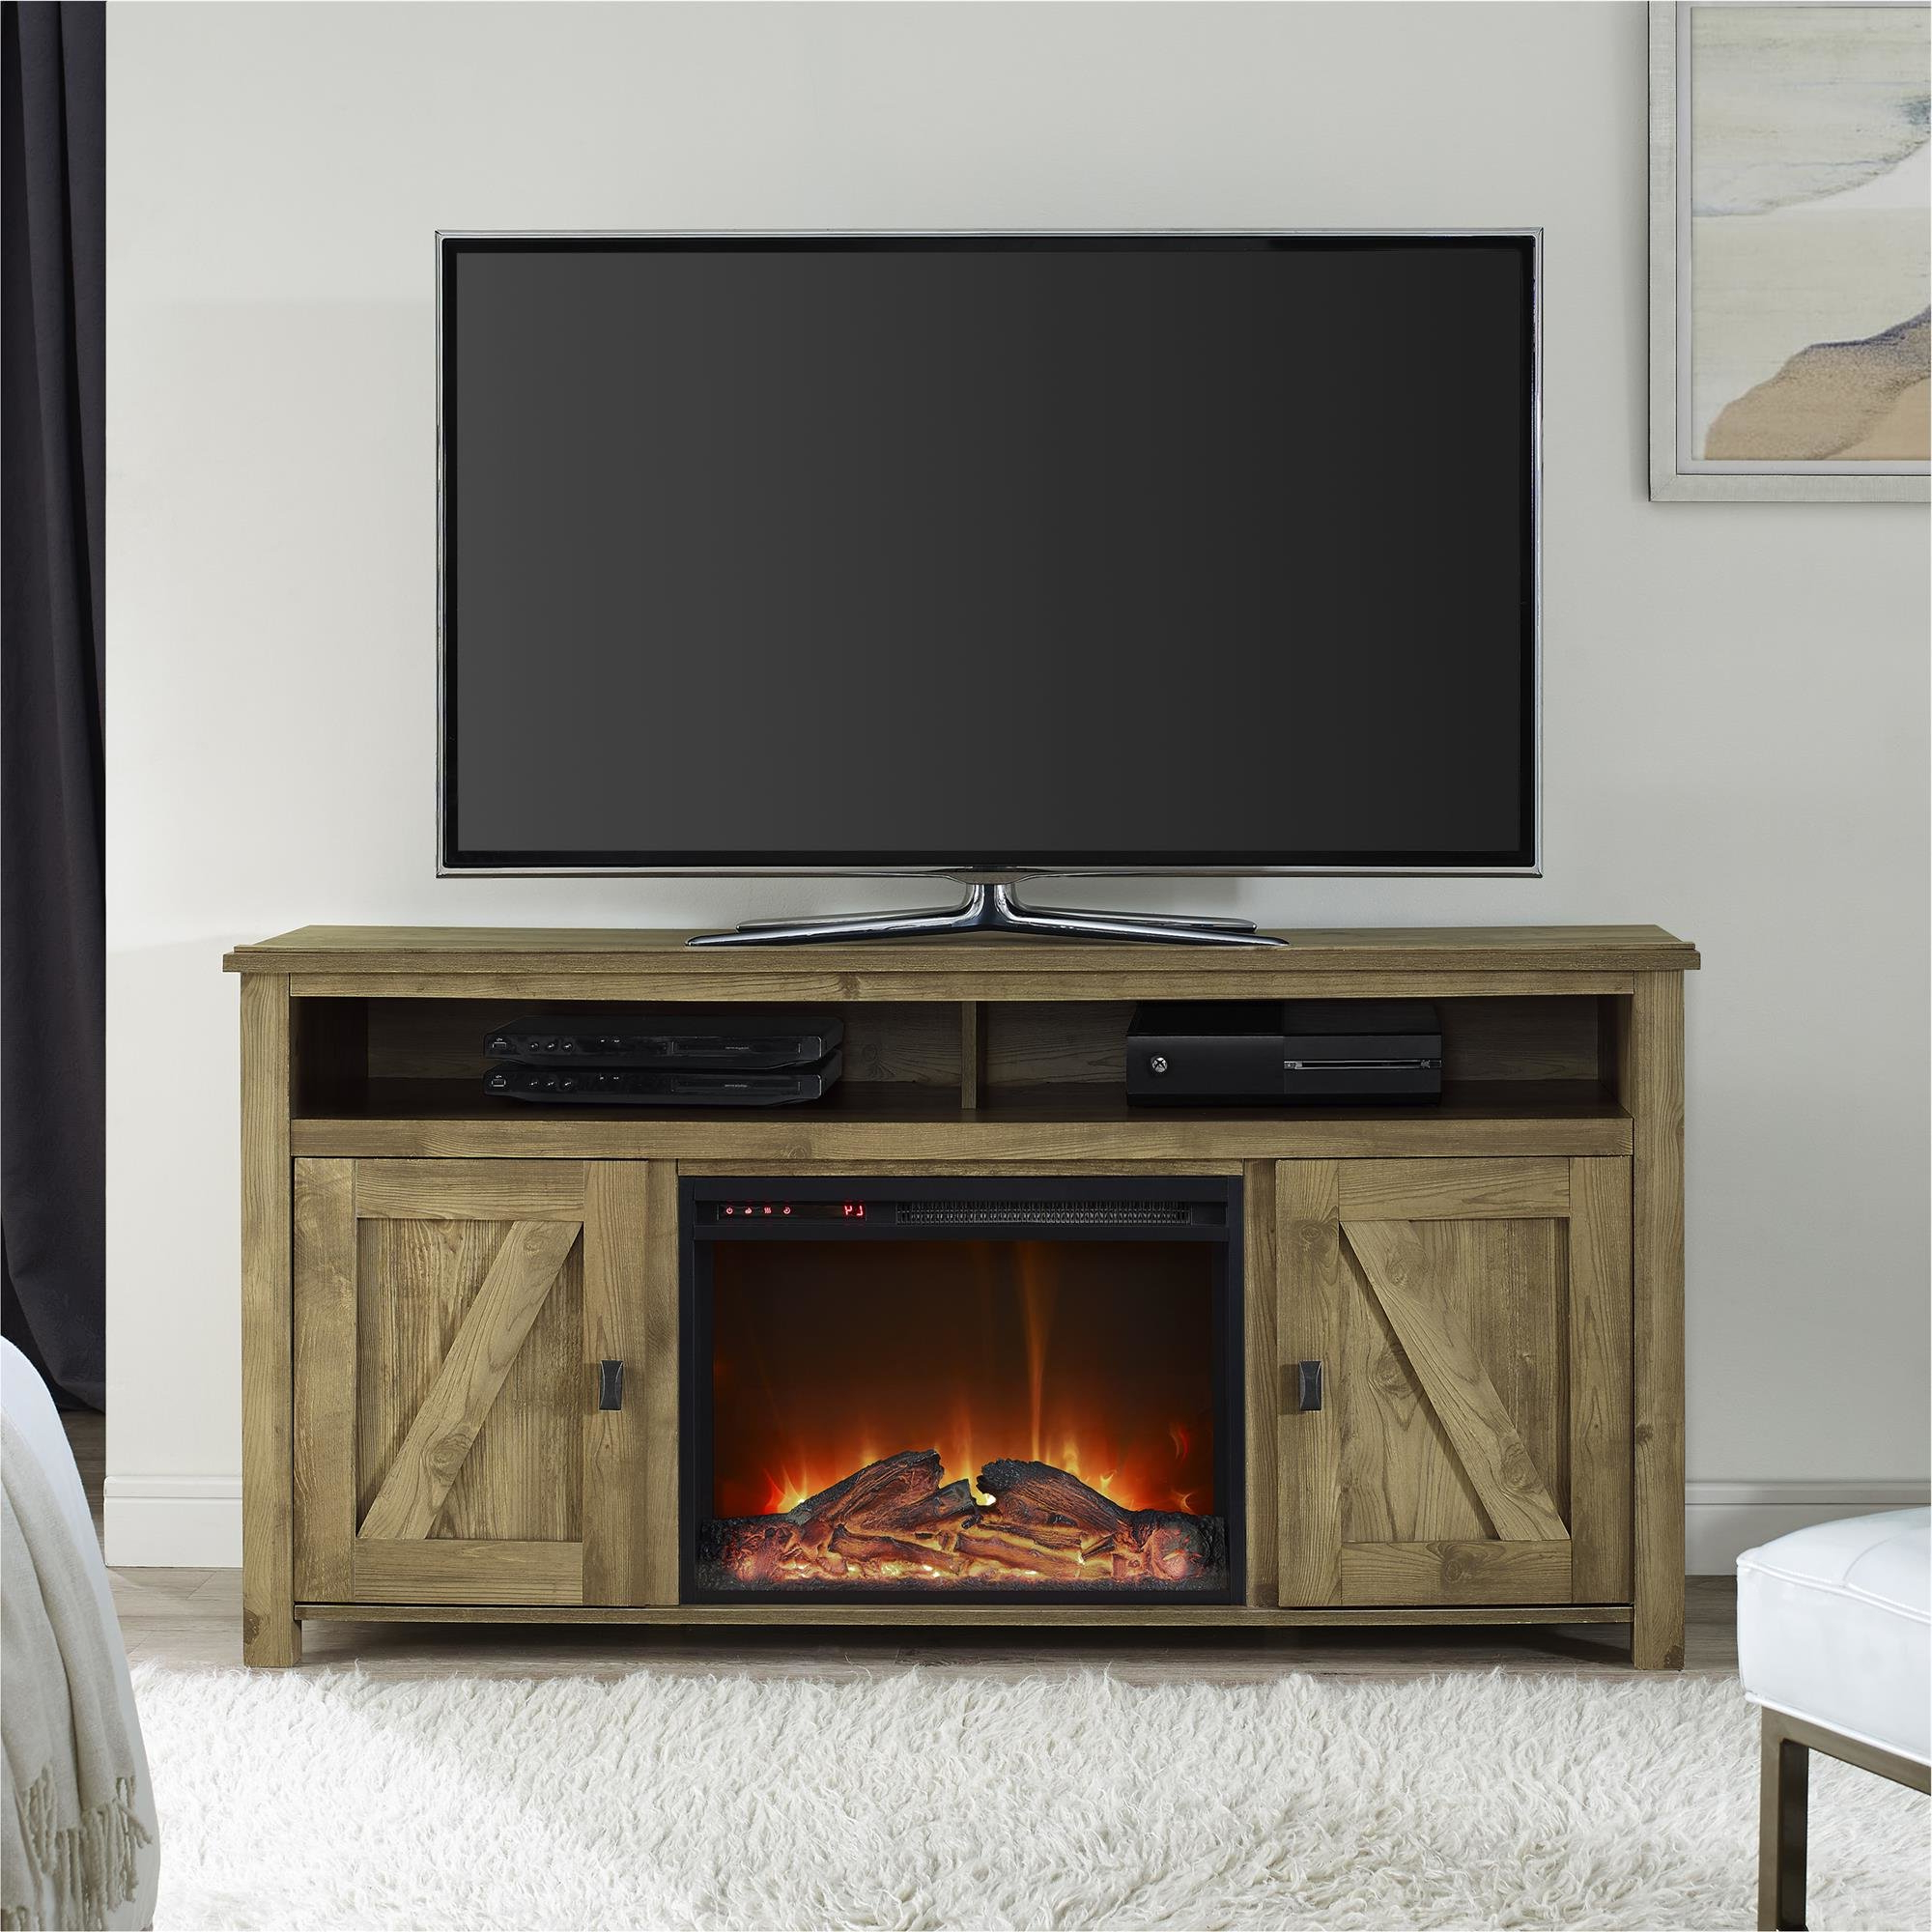 """Most Recent Mistana Whittier Tv Stand For Tvs Up To 60"""" With Fireplace & Reviews For Dixon White 65 Inch Tv Stands (Gallery 7 of 20)"""